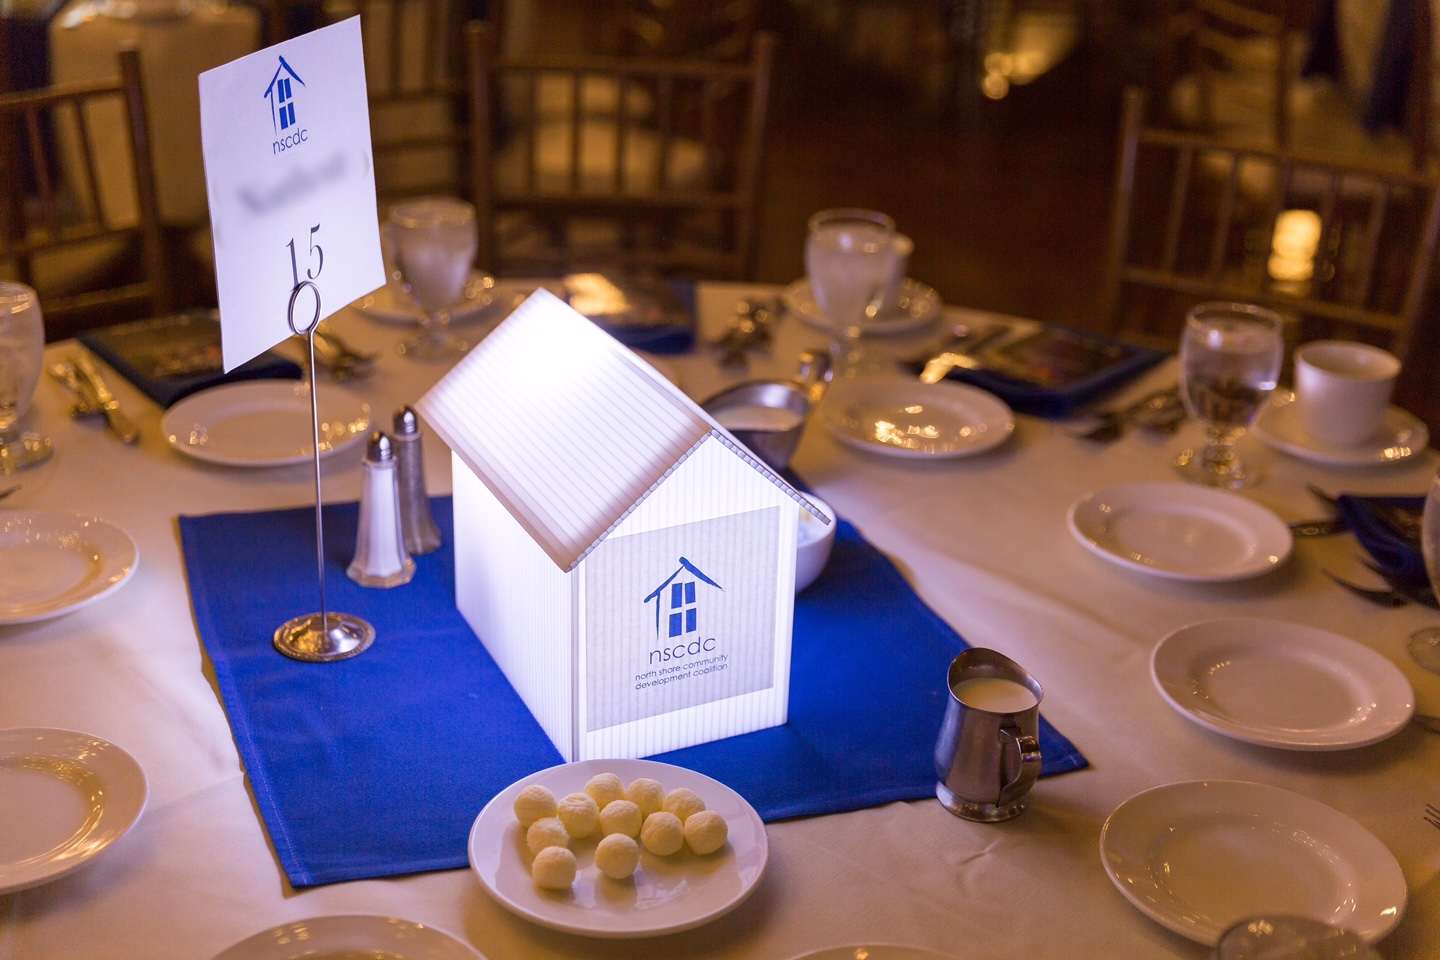 In this photo, you see a custom centerpiece that was designed for a corporate client to match their logo.